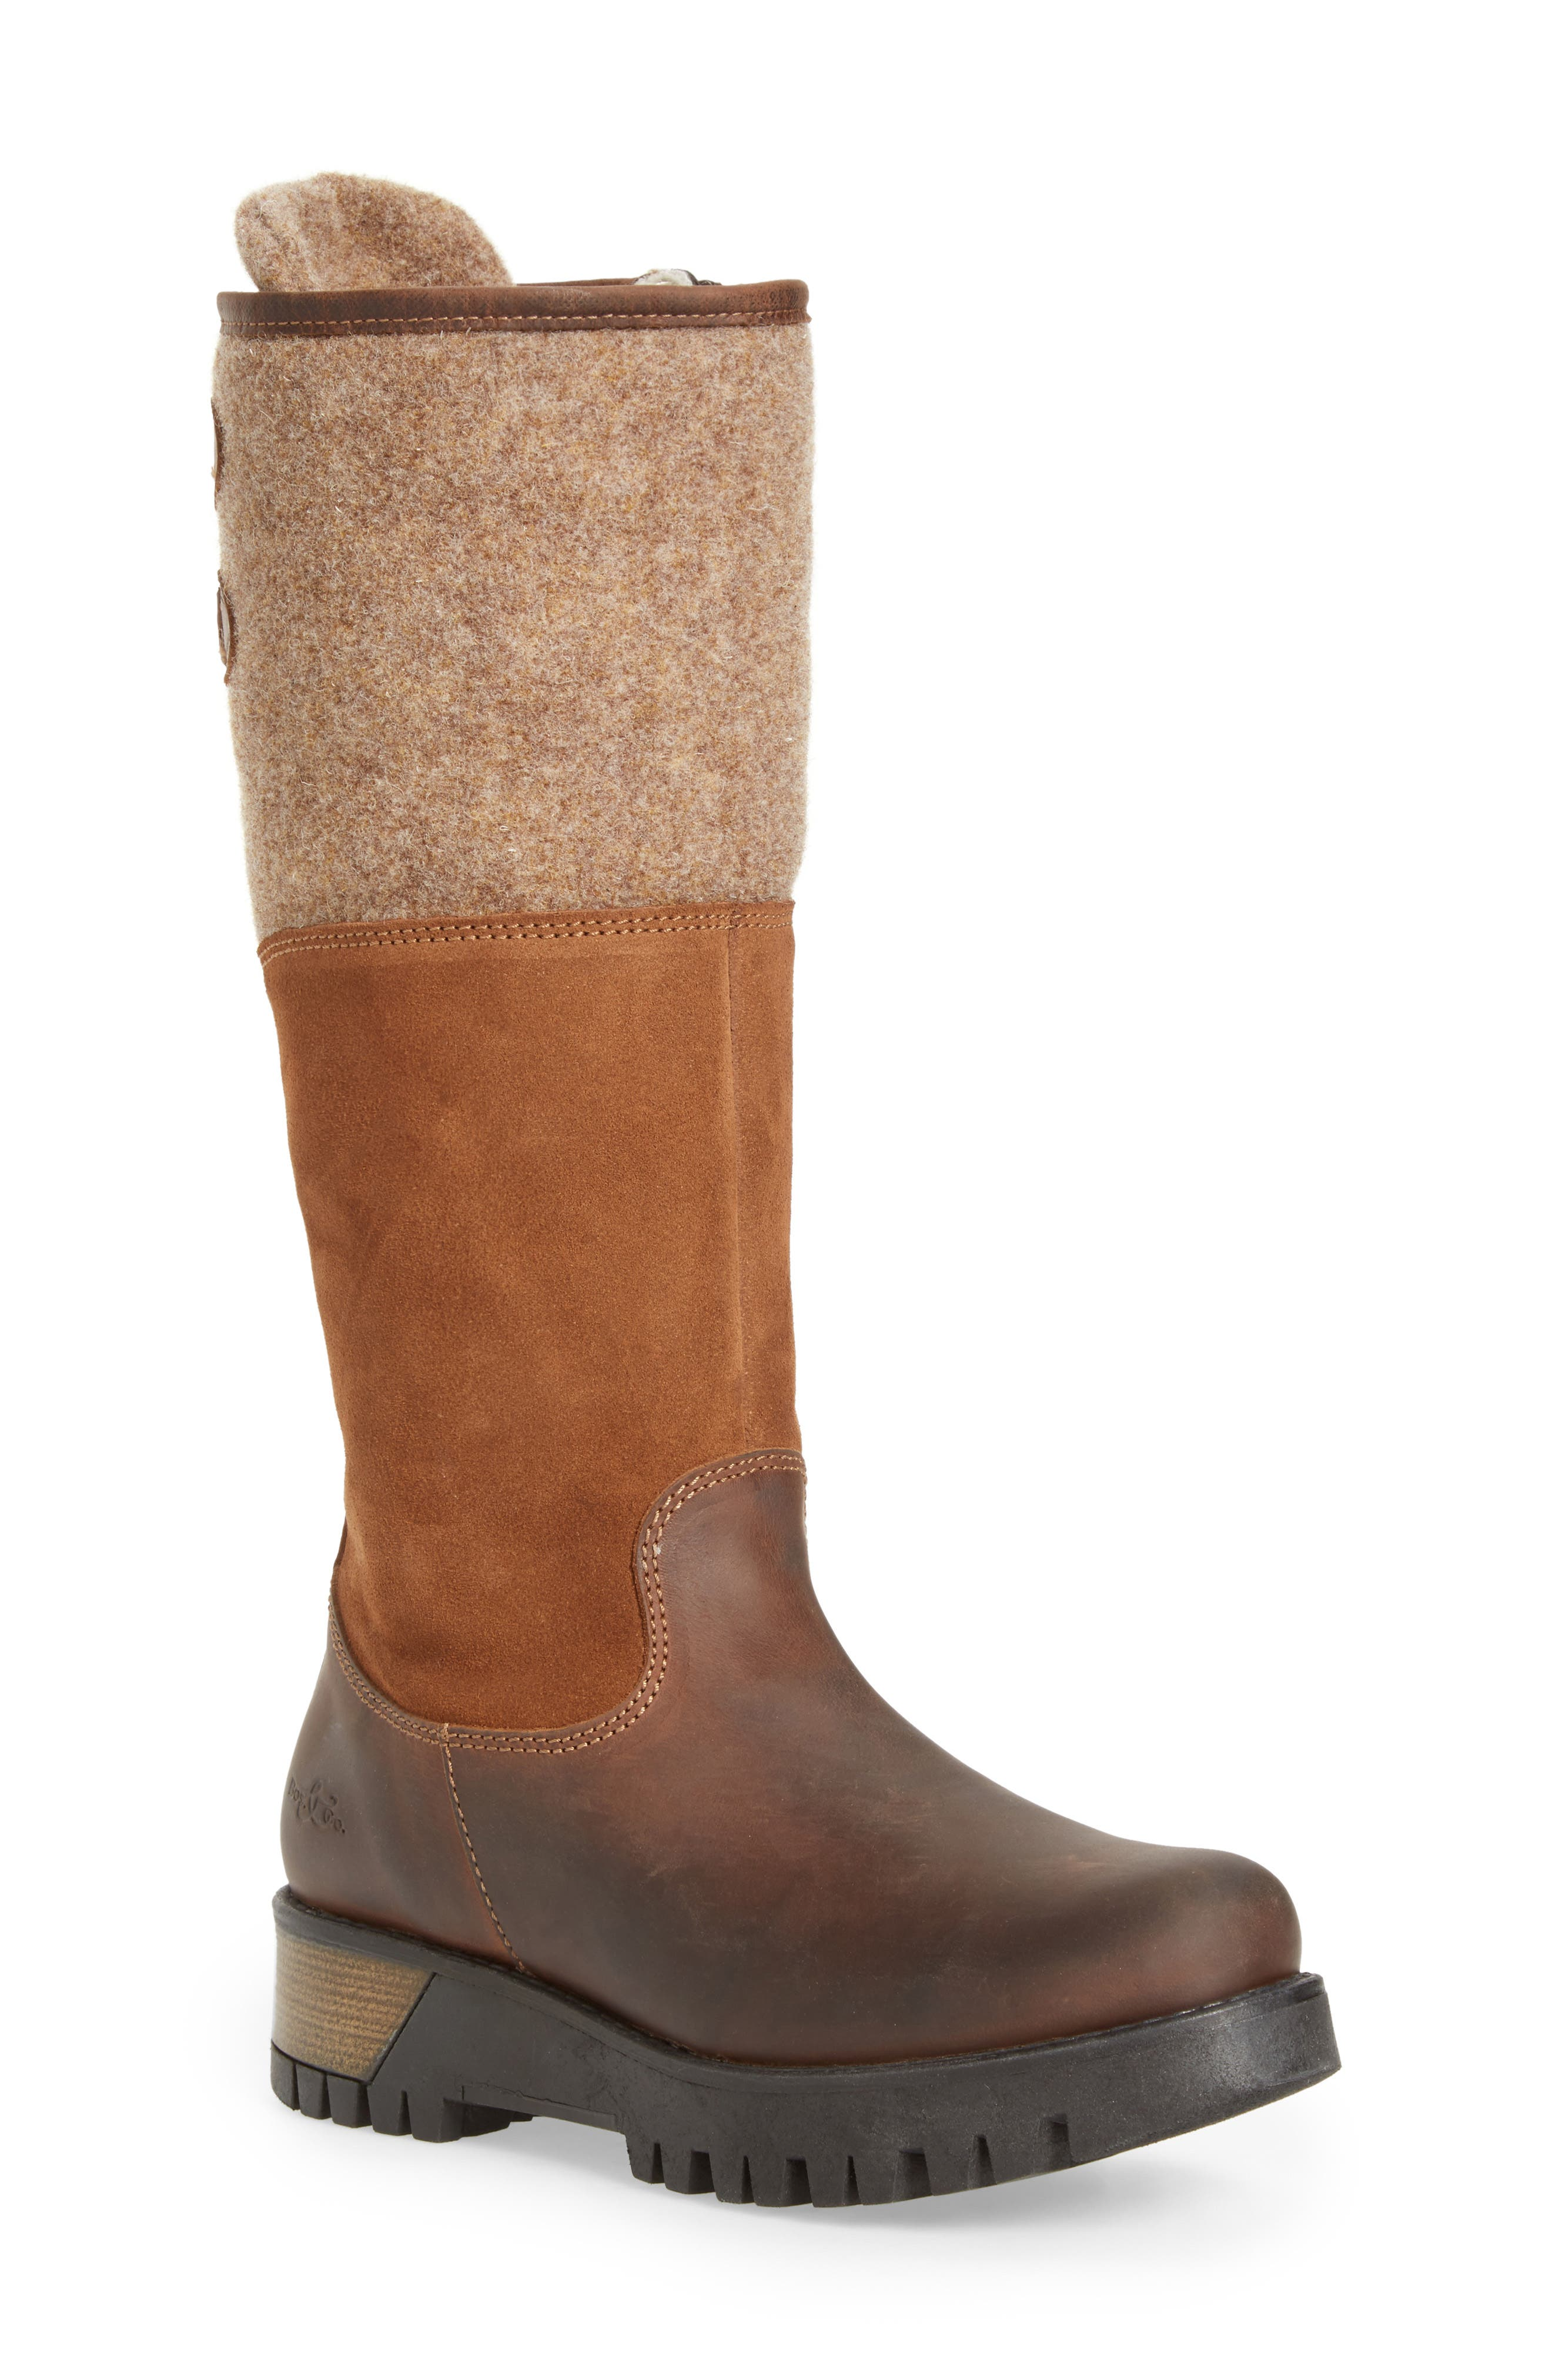 'Ginger' Waterproof Mid Calf Platform Boot,                             Main thumbnail 1, color,                             Expresso/ Beige